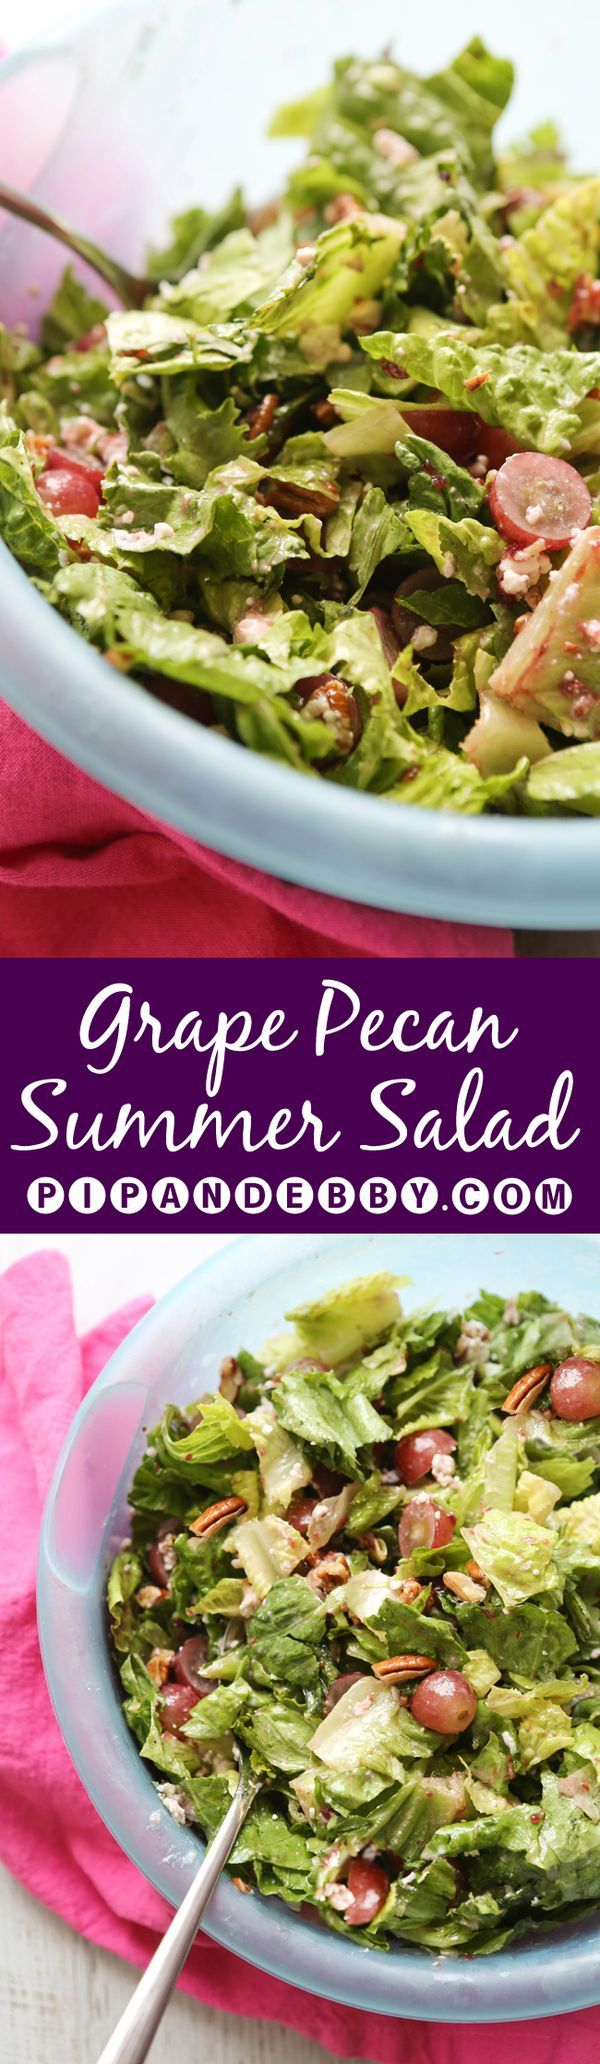 Grape Pecan Summer Salad with Raspberry Vinaigrette | Such a simple salad, yet so delicious!